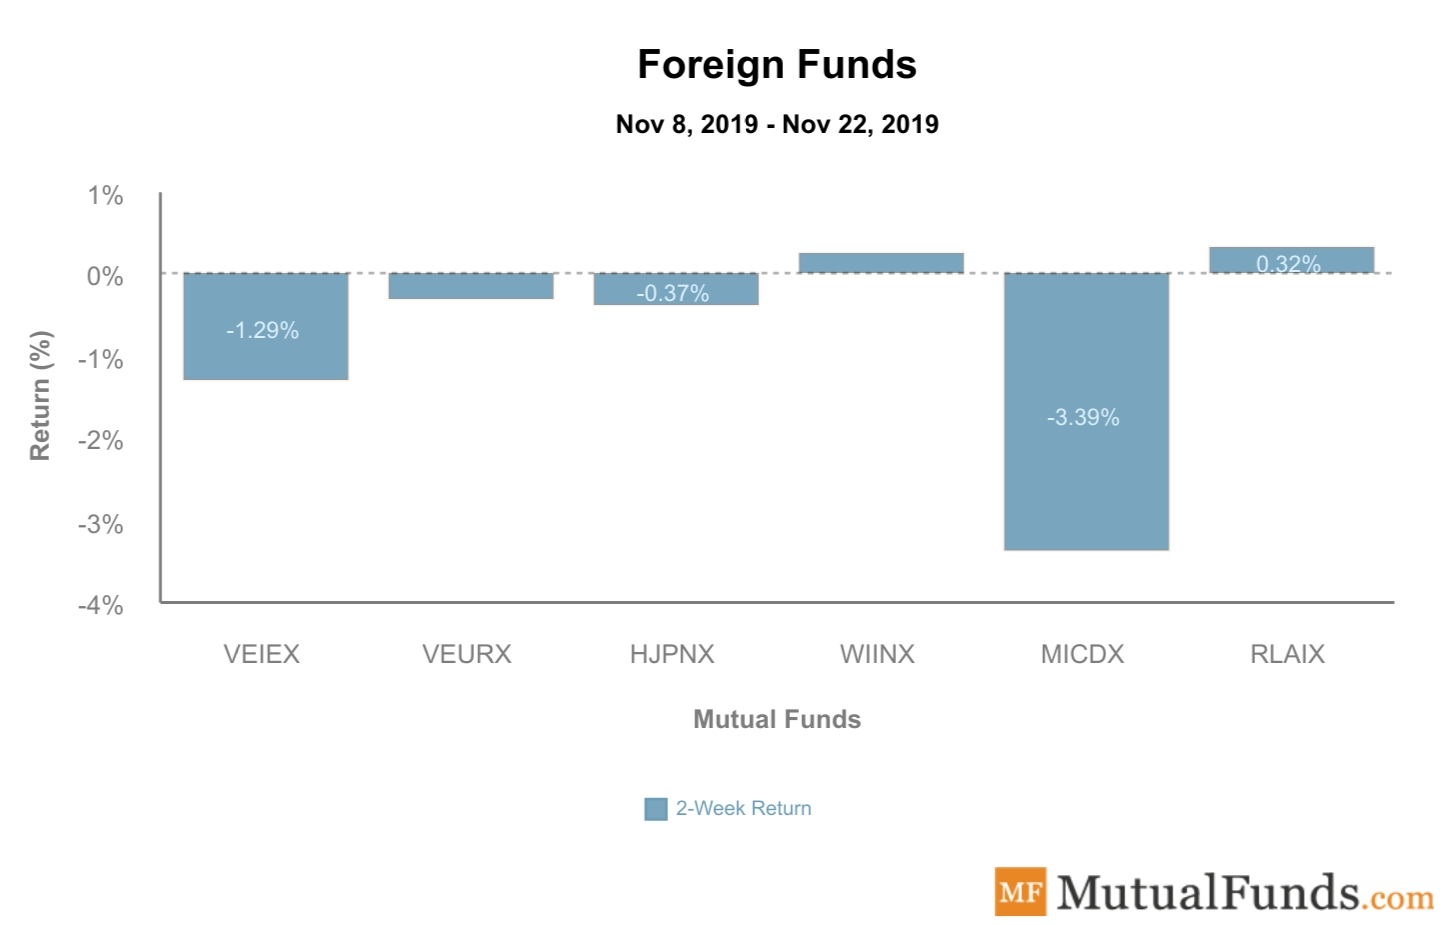 Foreign Funds Performance Nov 26, 2019